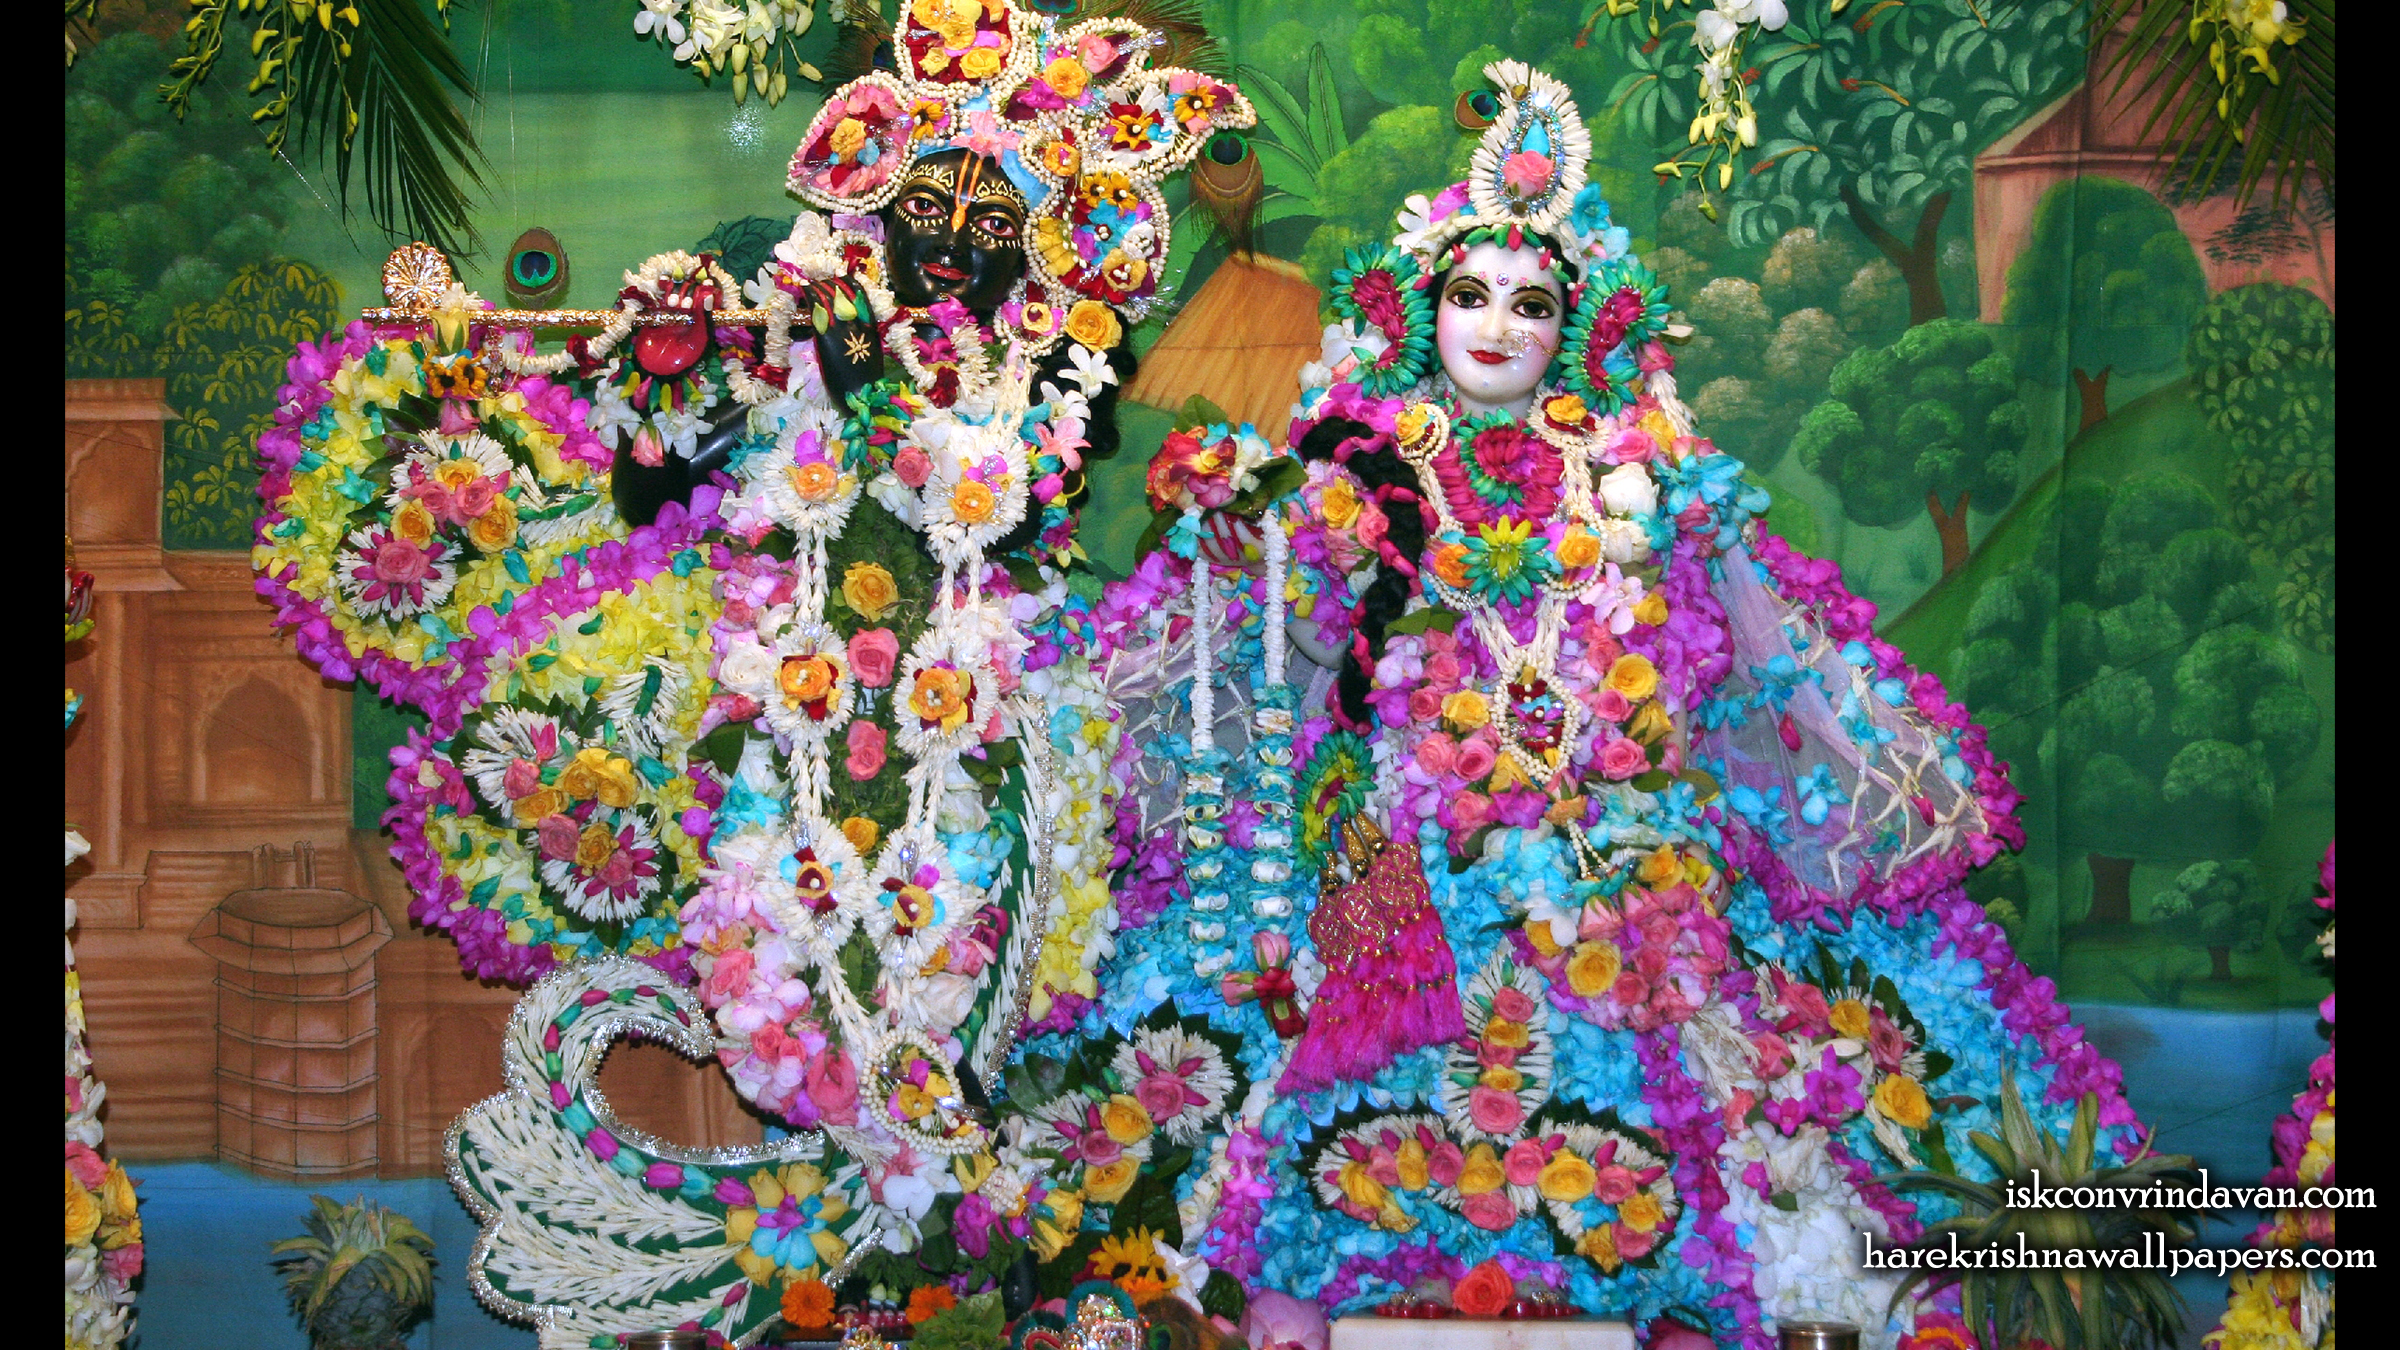 Sri Sri Radha Shyamsundar Wallpaper (007) Size 2400x1350 Download